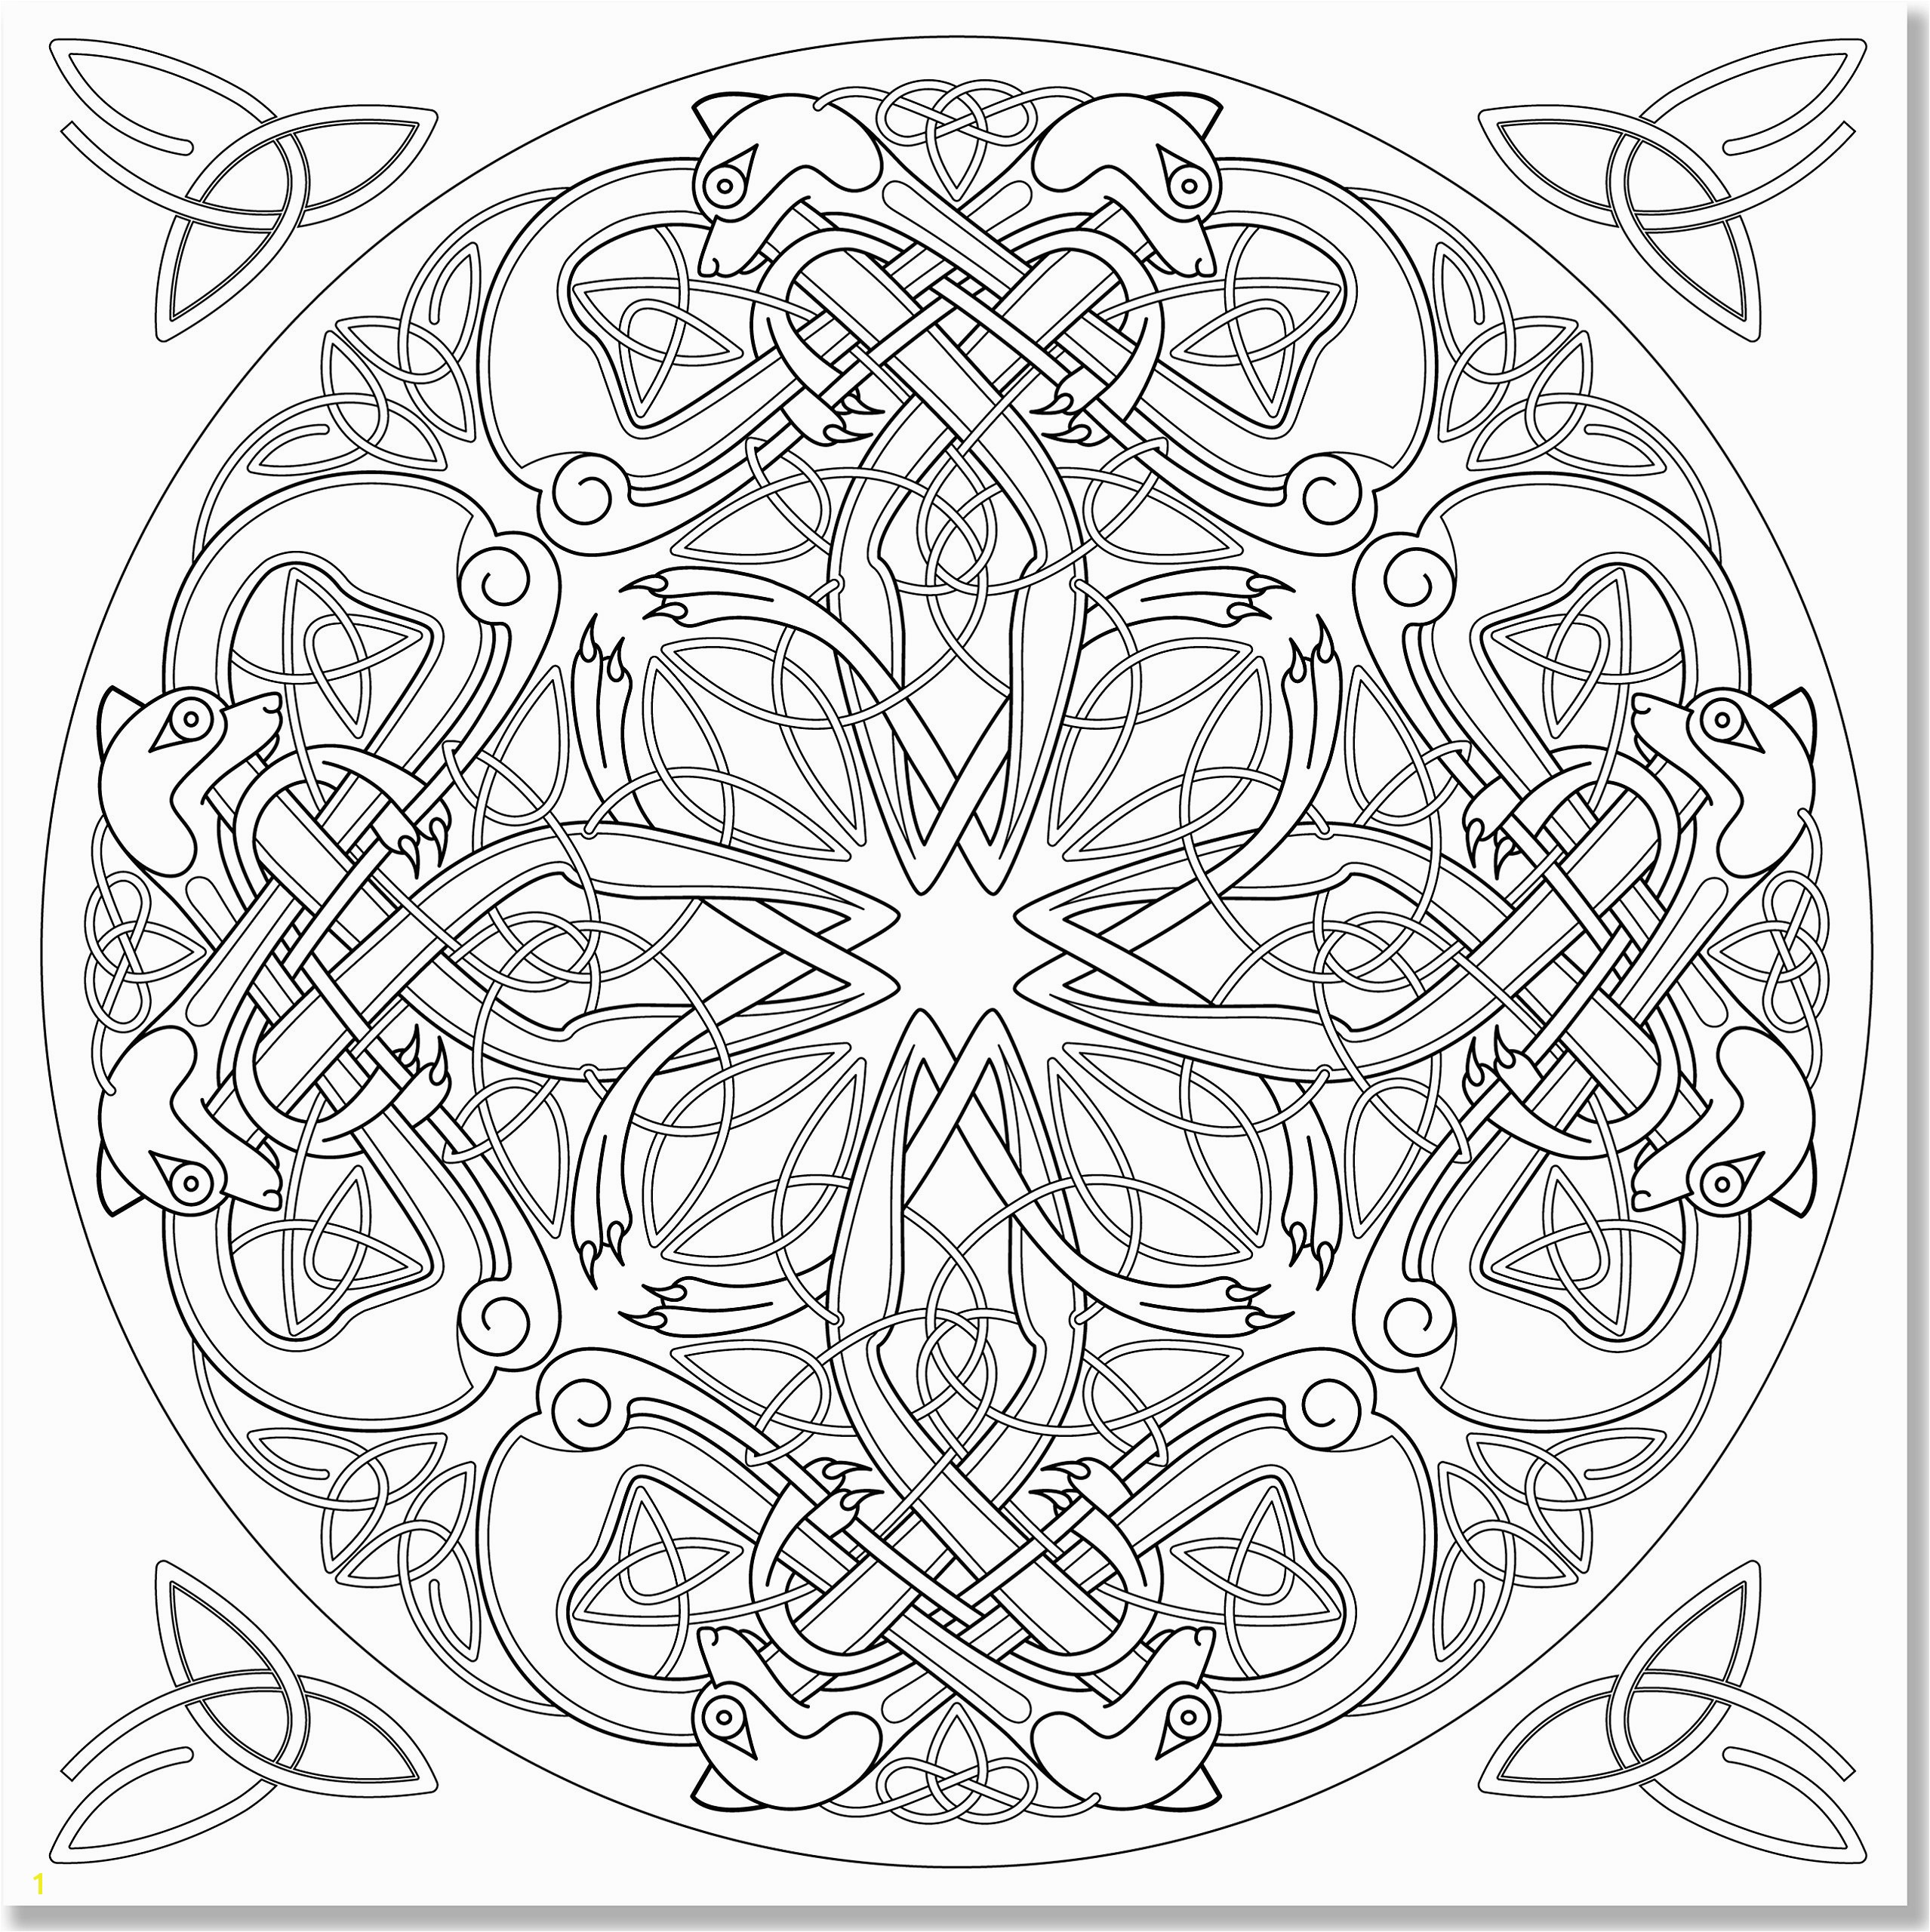 Coloring Books for Grown Ups Celtic Mandala Coloring Pages 35 Best Mandala Coloring Pages